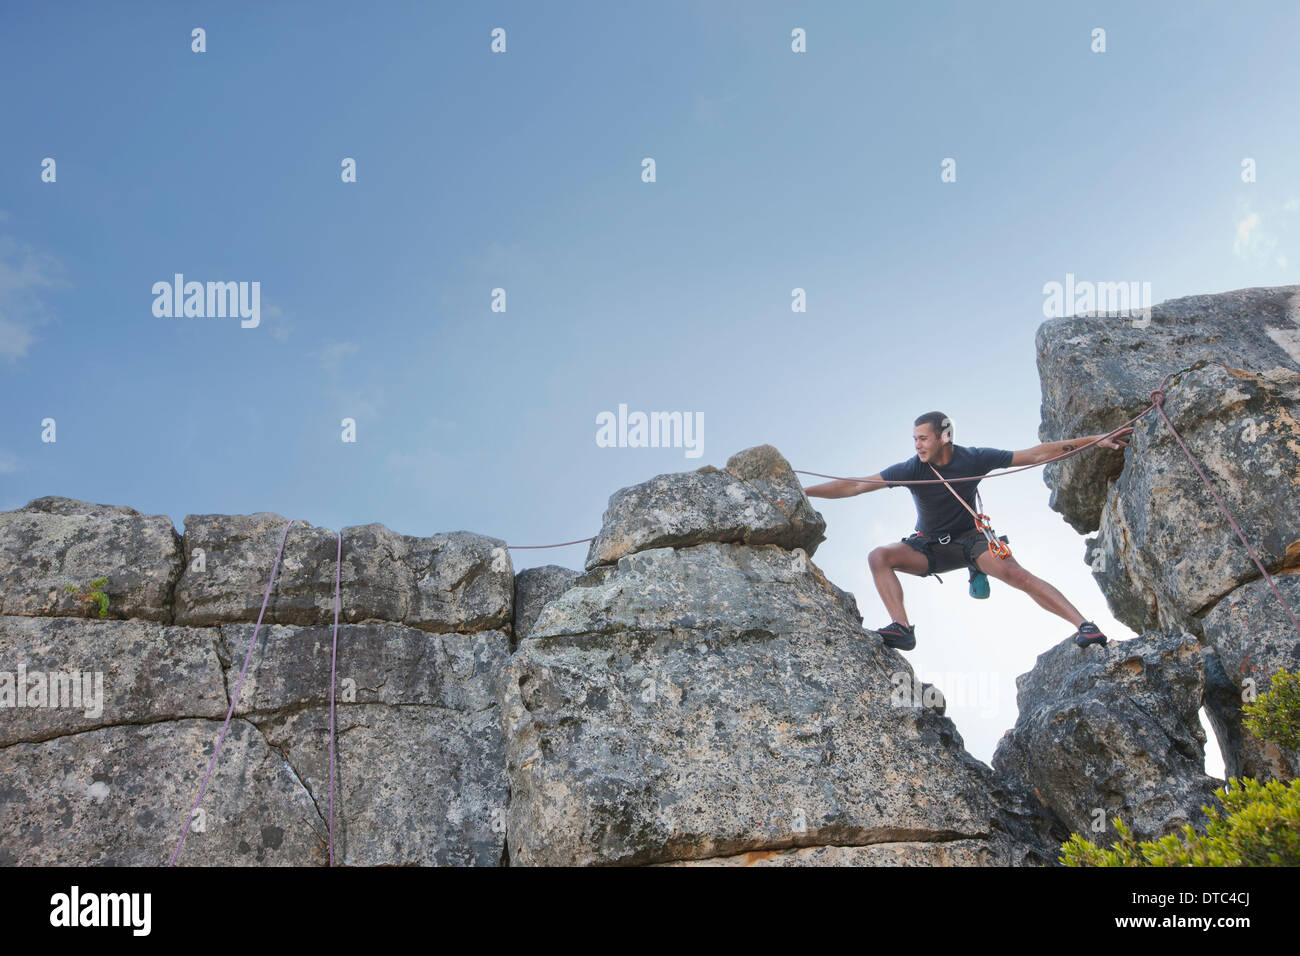 Young man stepping and reaching on rock climb - Stock Image